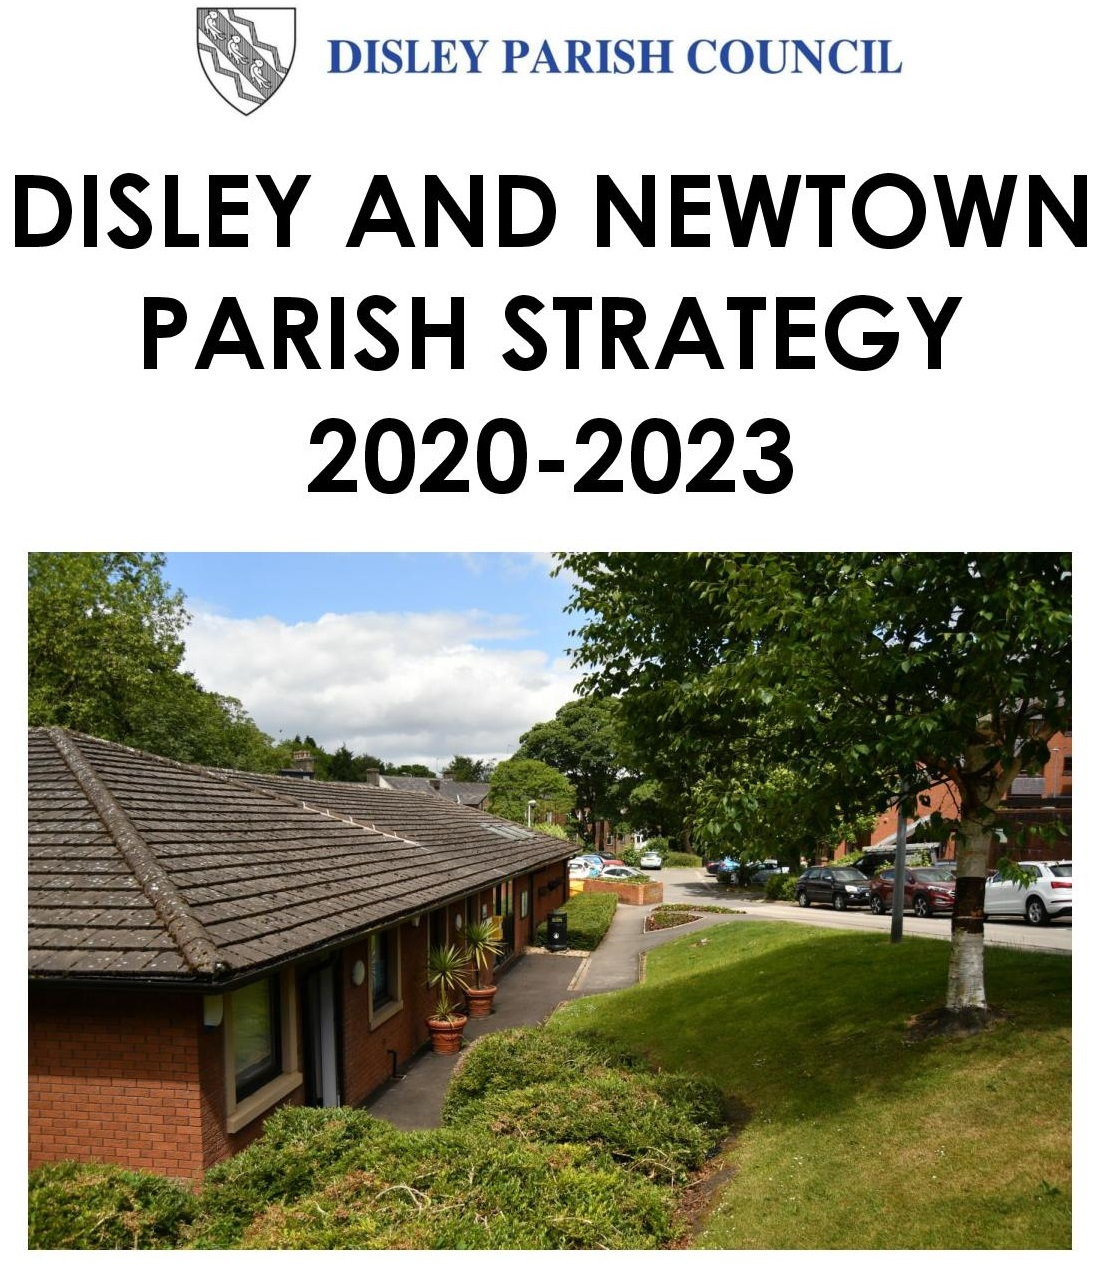 Disley and Newtown Parish Strategy 2020-2023